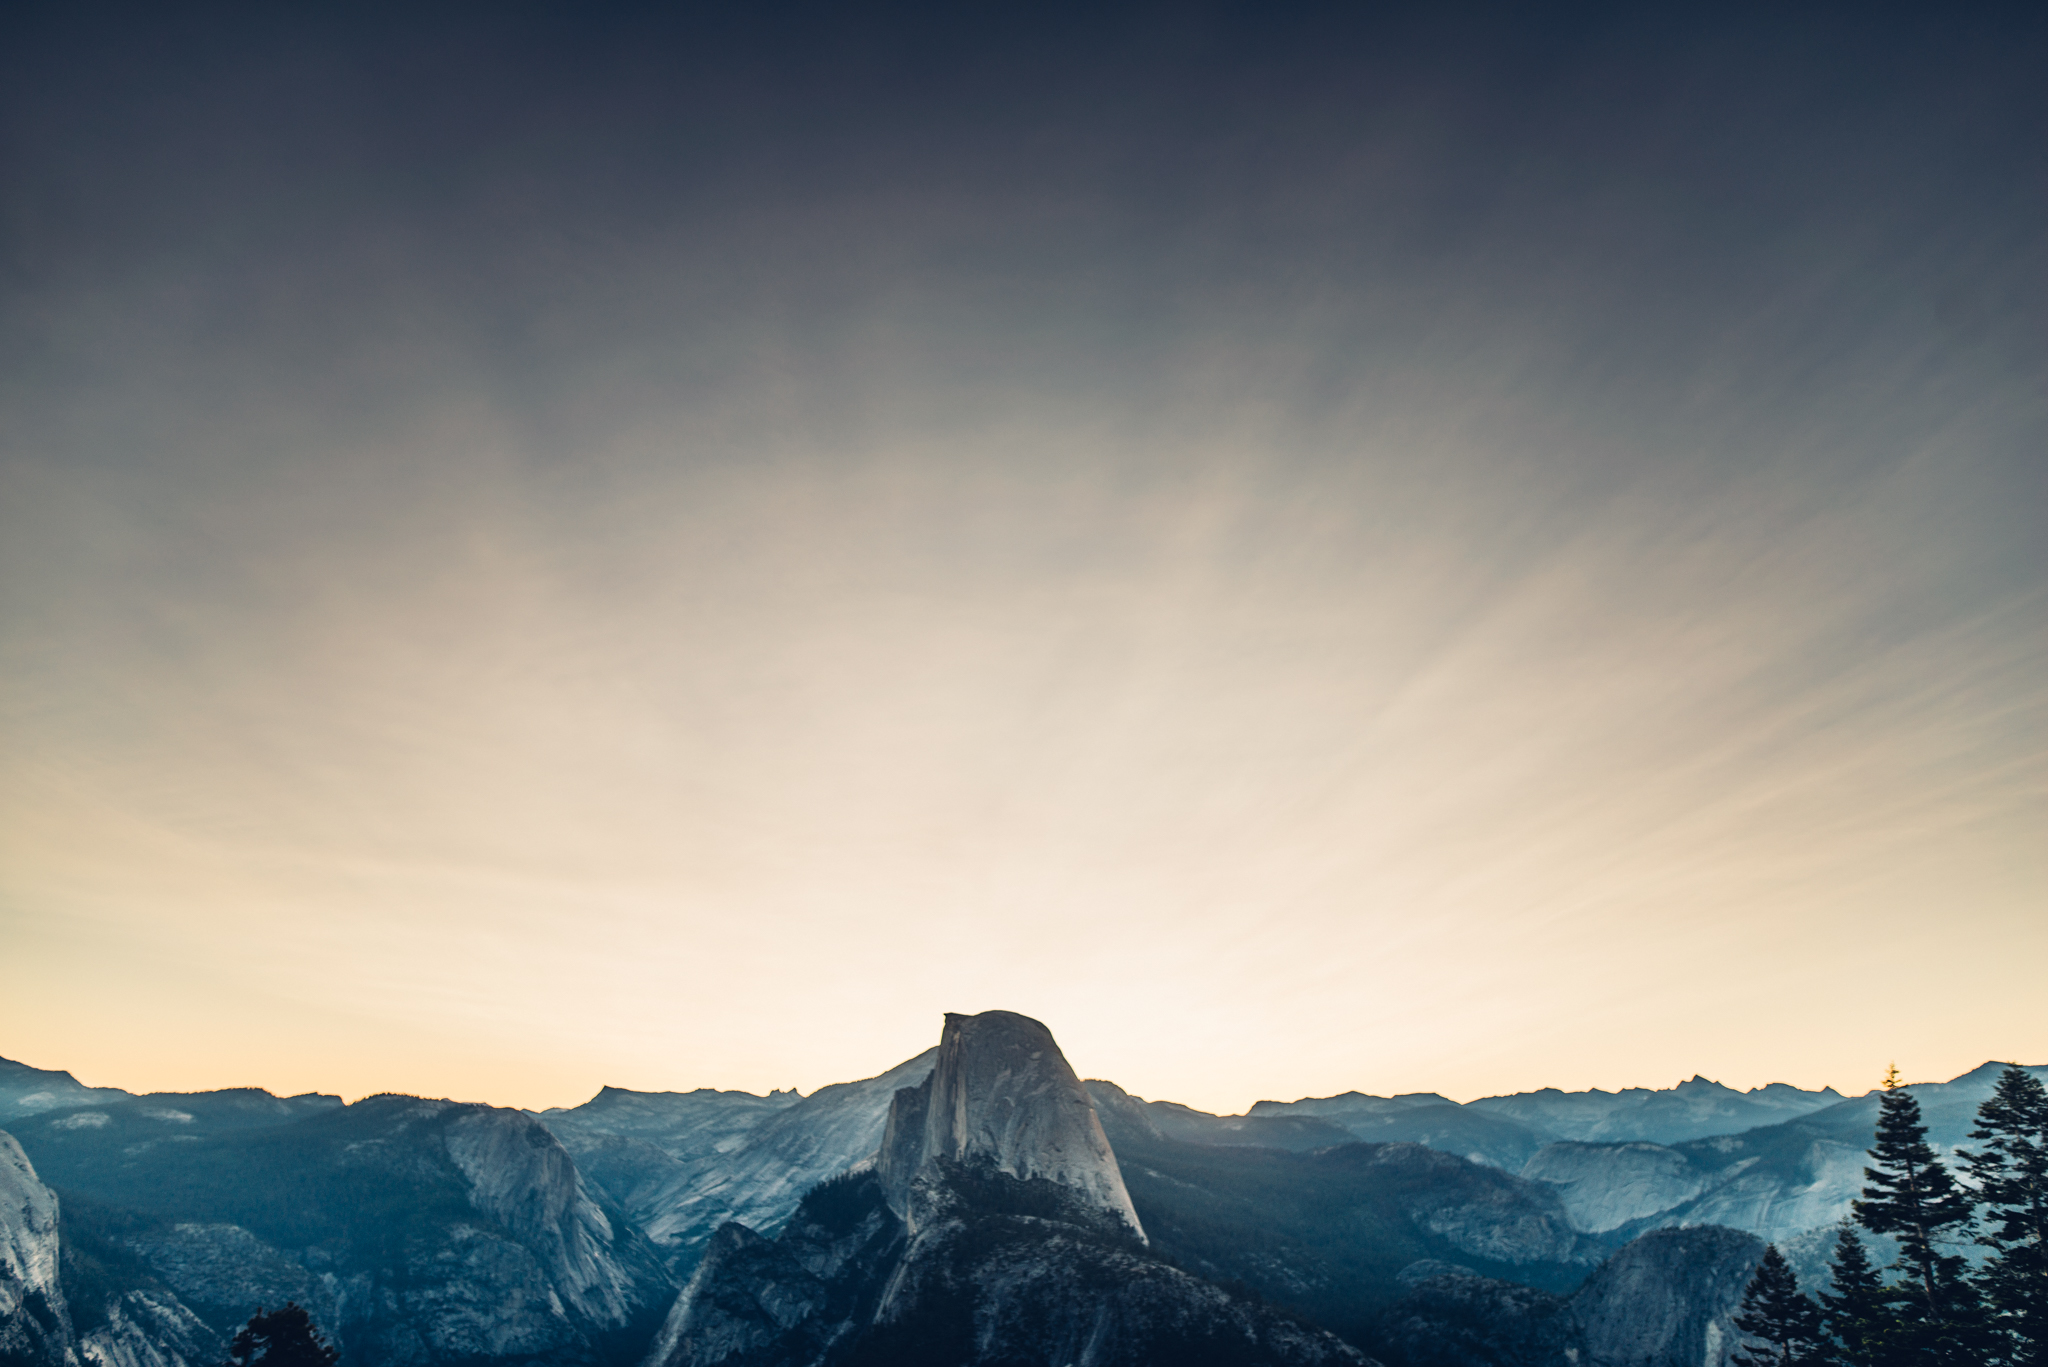 ©Isaiah & Taylor Photography - Los Angeles Destination Wedding Photographer - Yosemite National Park Hiking Adventure Engagement - Glacier Point Sunrise-001.jpg